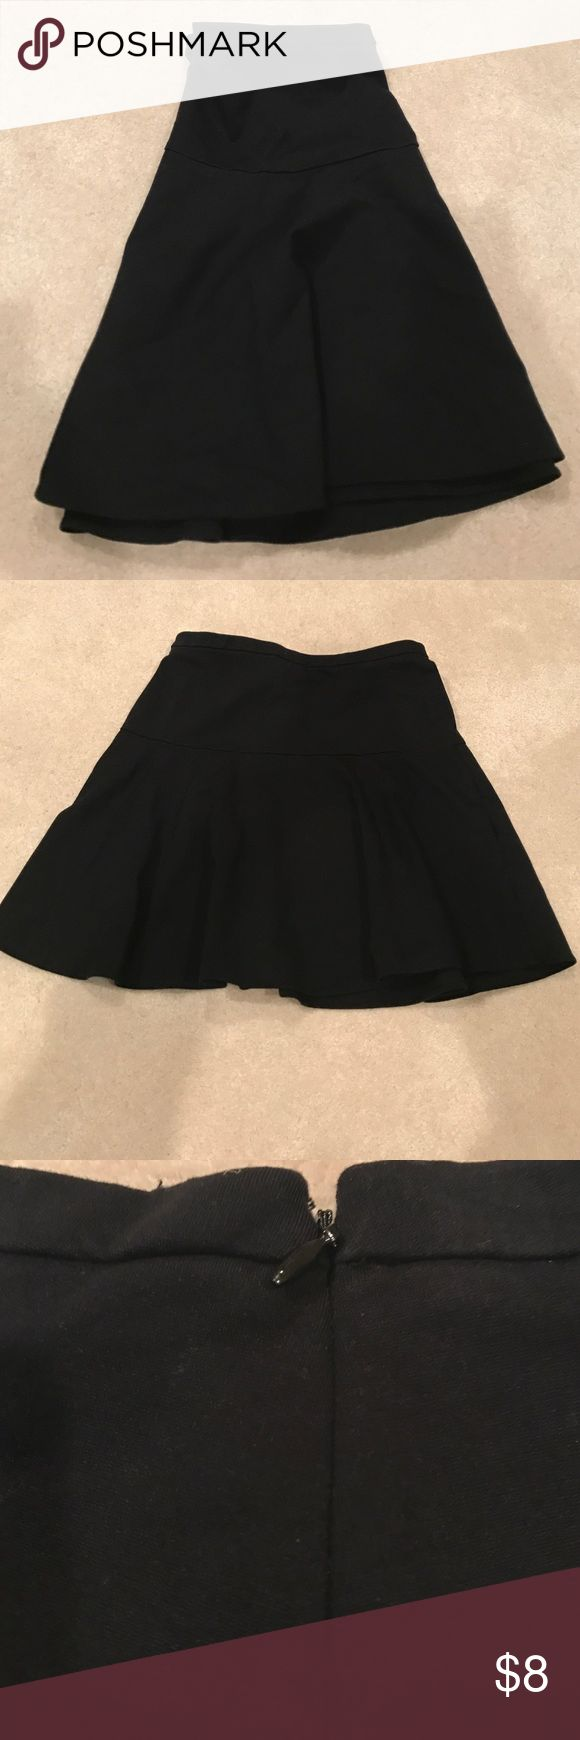 Cheer me on black skirt This pleated black skater skirt is super comfy ! Wore once. Has a side zipper. In perfect new condition. Merona. Stretch extensible. Size 12. Merona Skirts